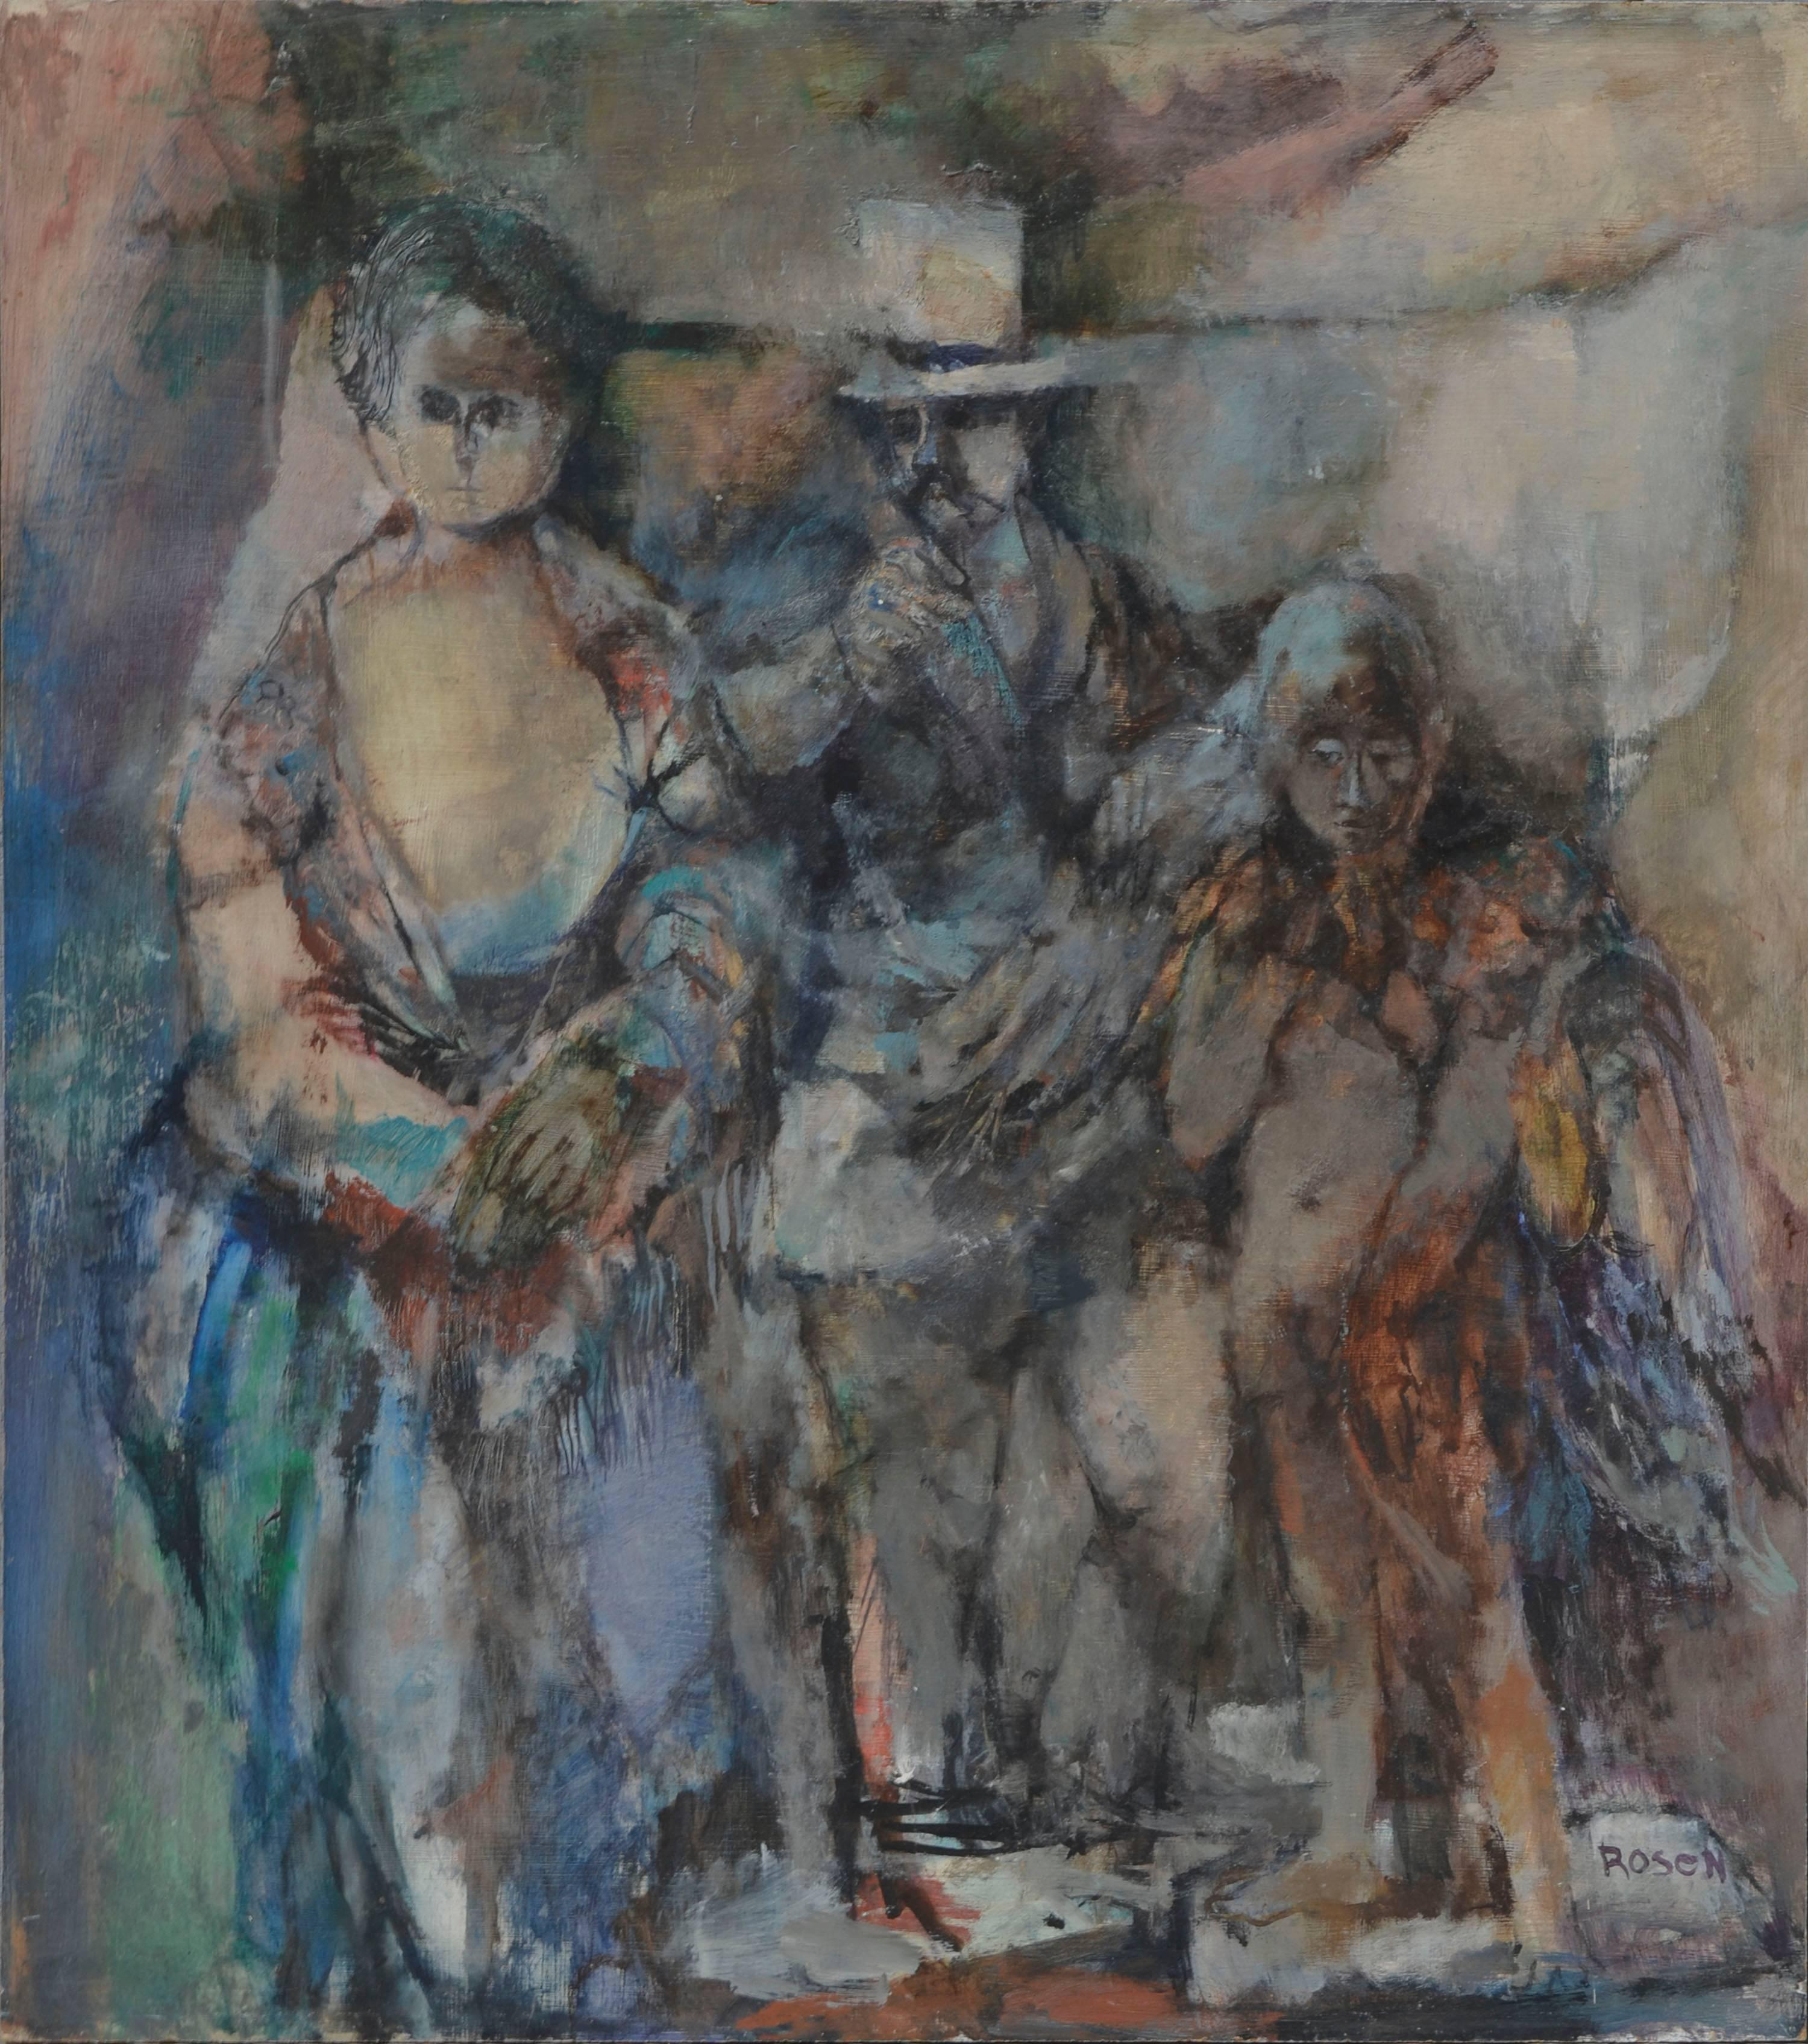 Victorian Couple with Angel - Figurative Abstract